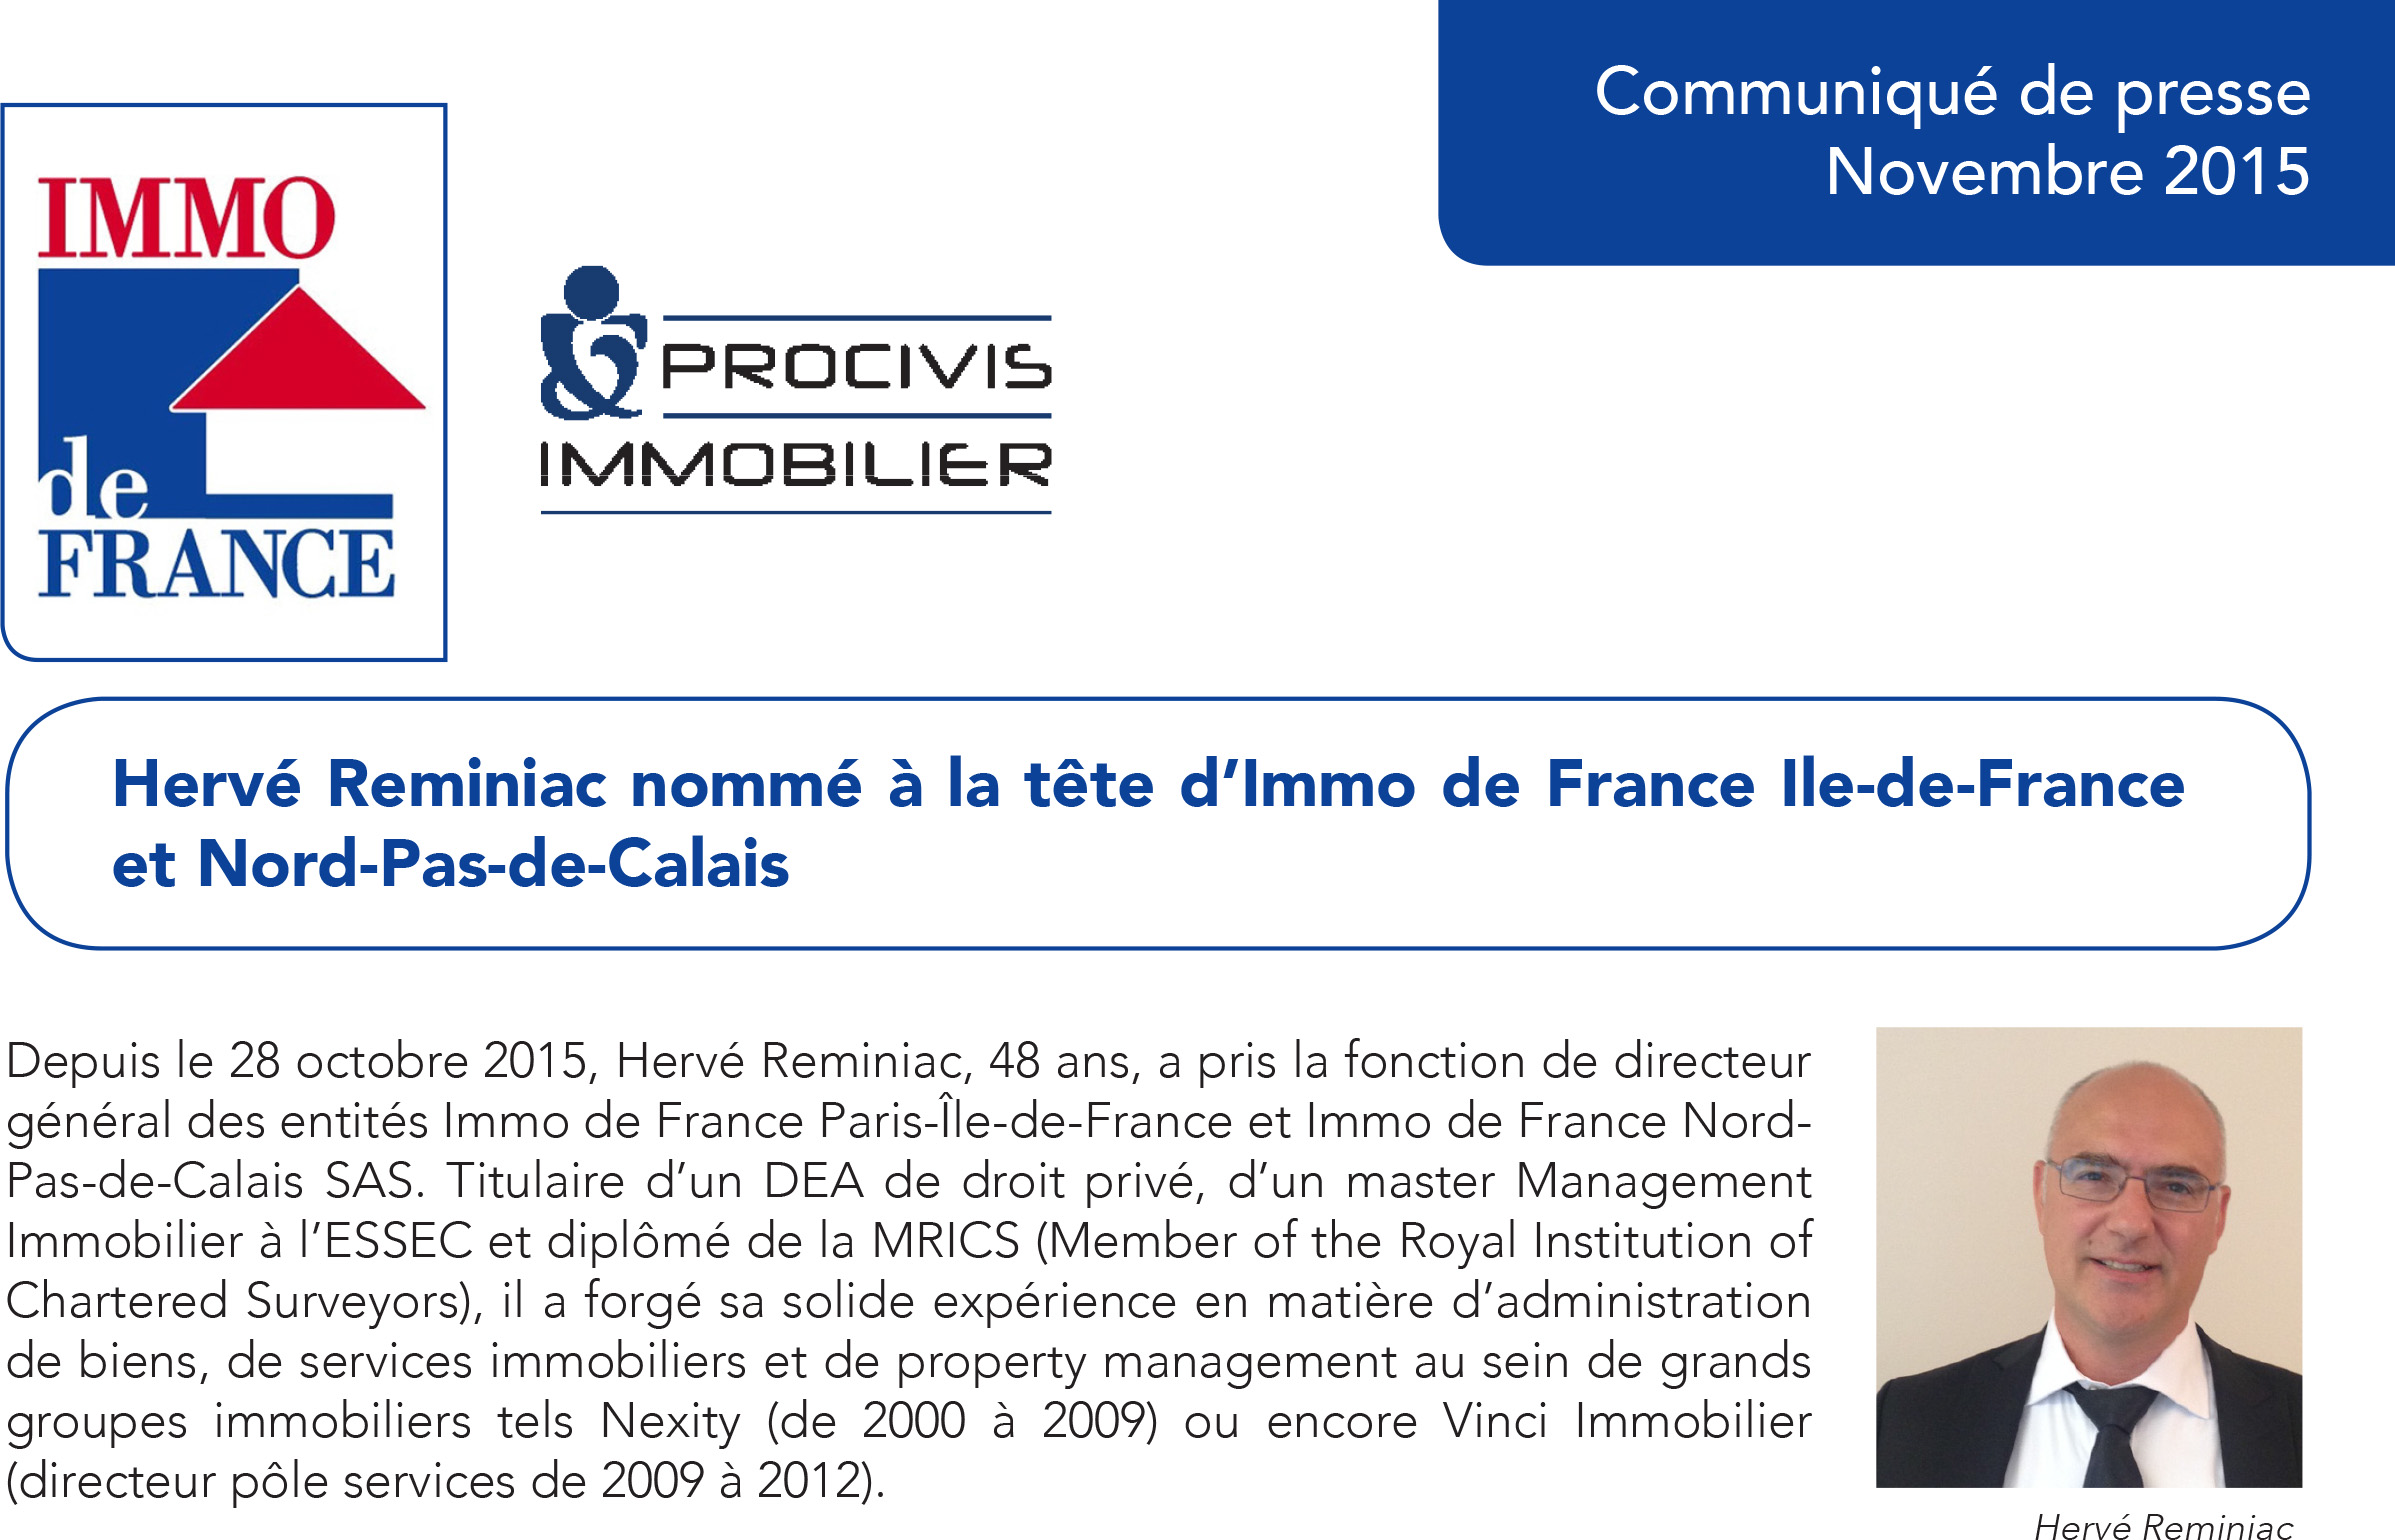 D link dwa 142 driver for Site immobilier france